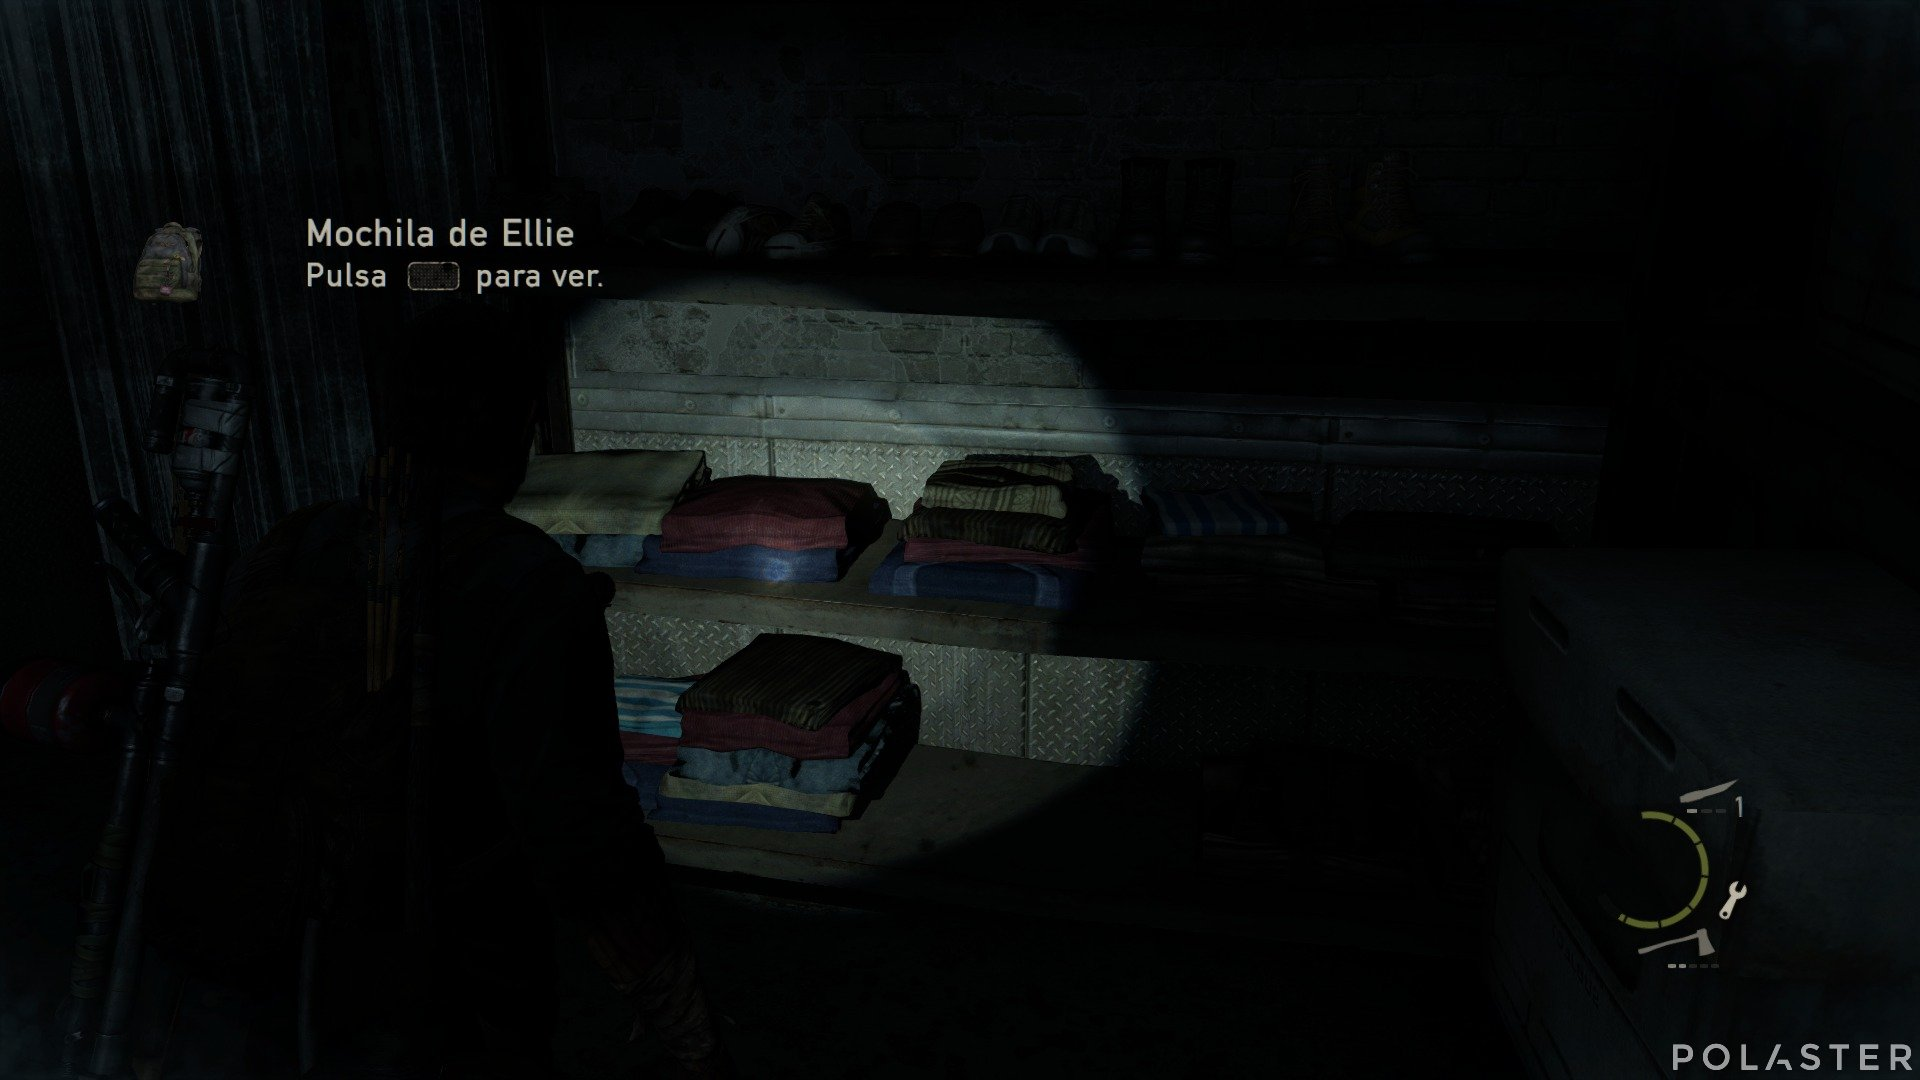 The Last of Us Artefacto Mochila de Ellie